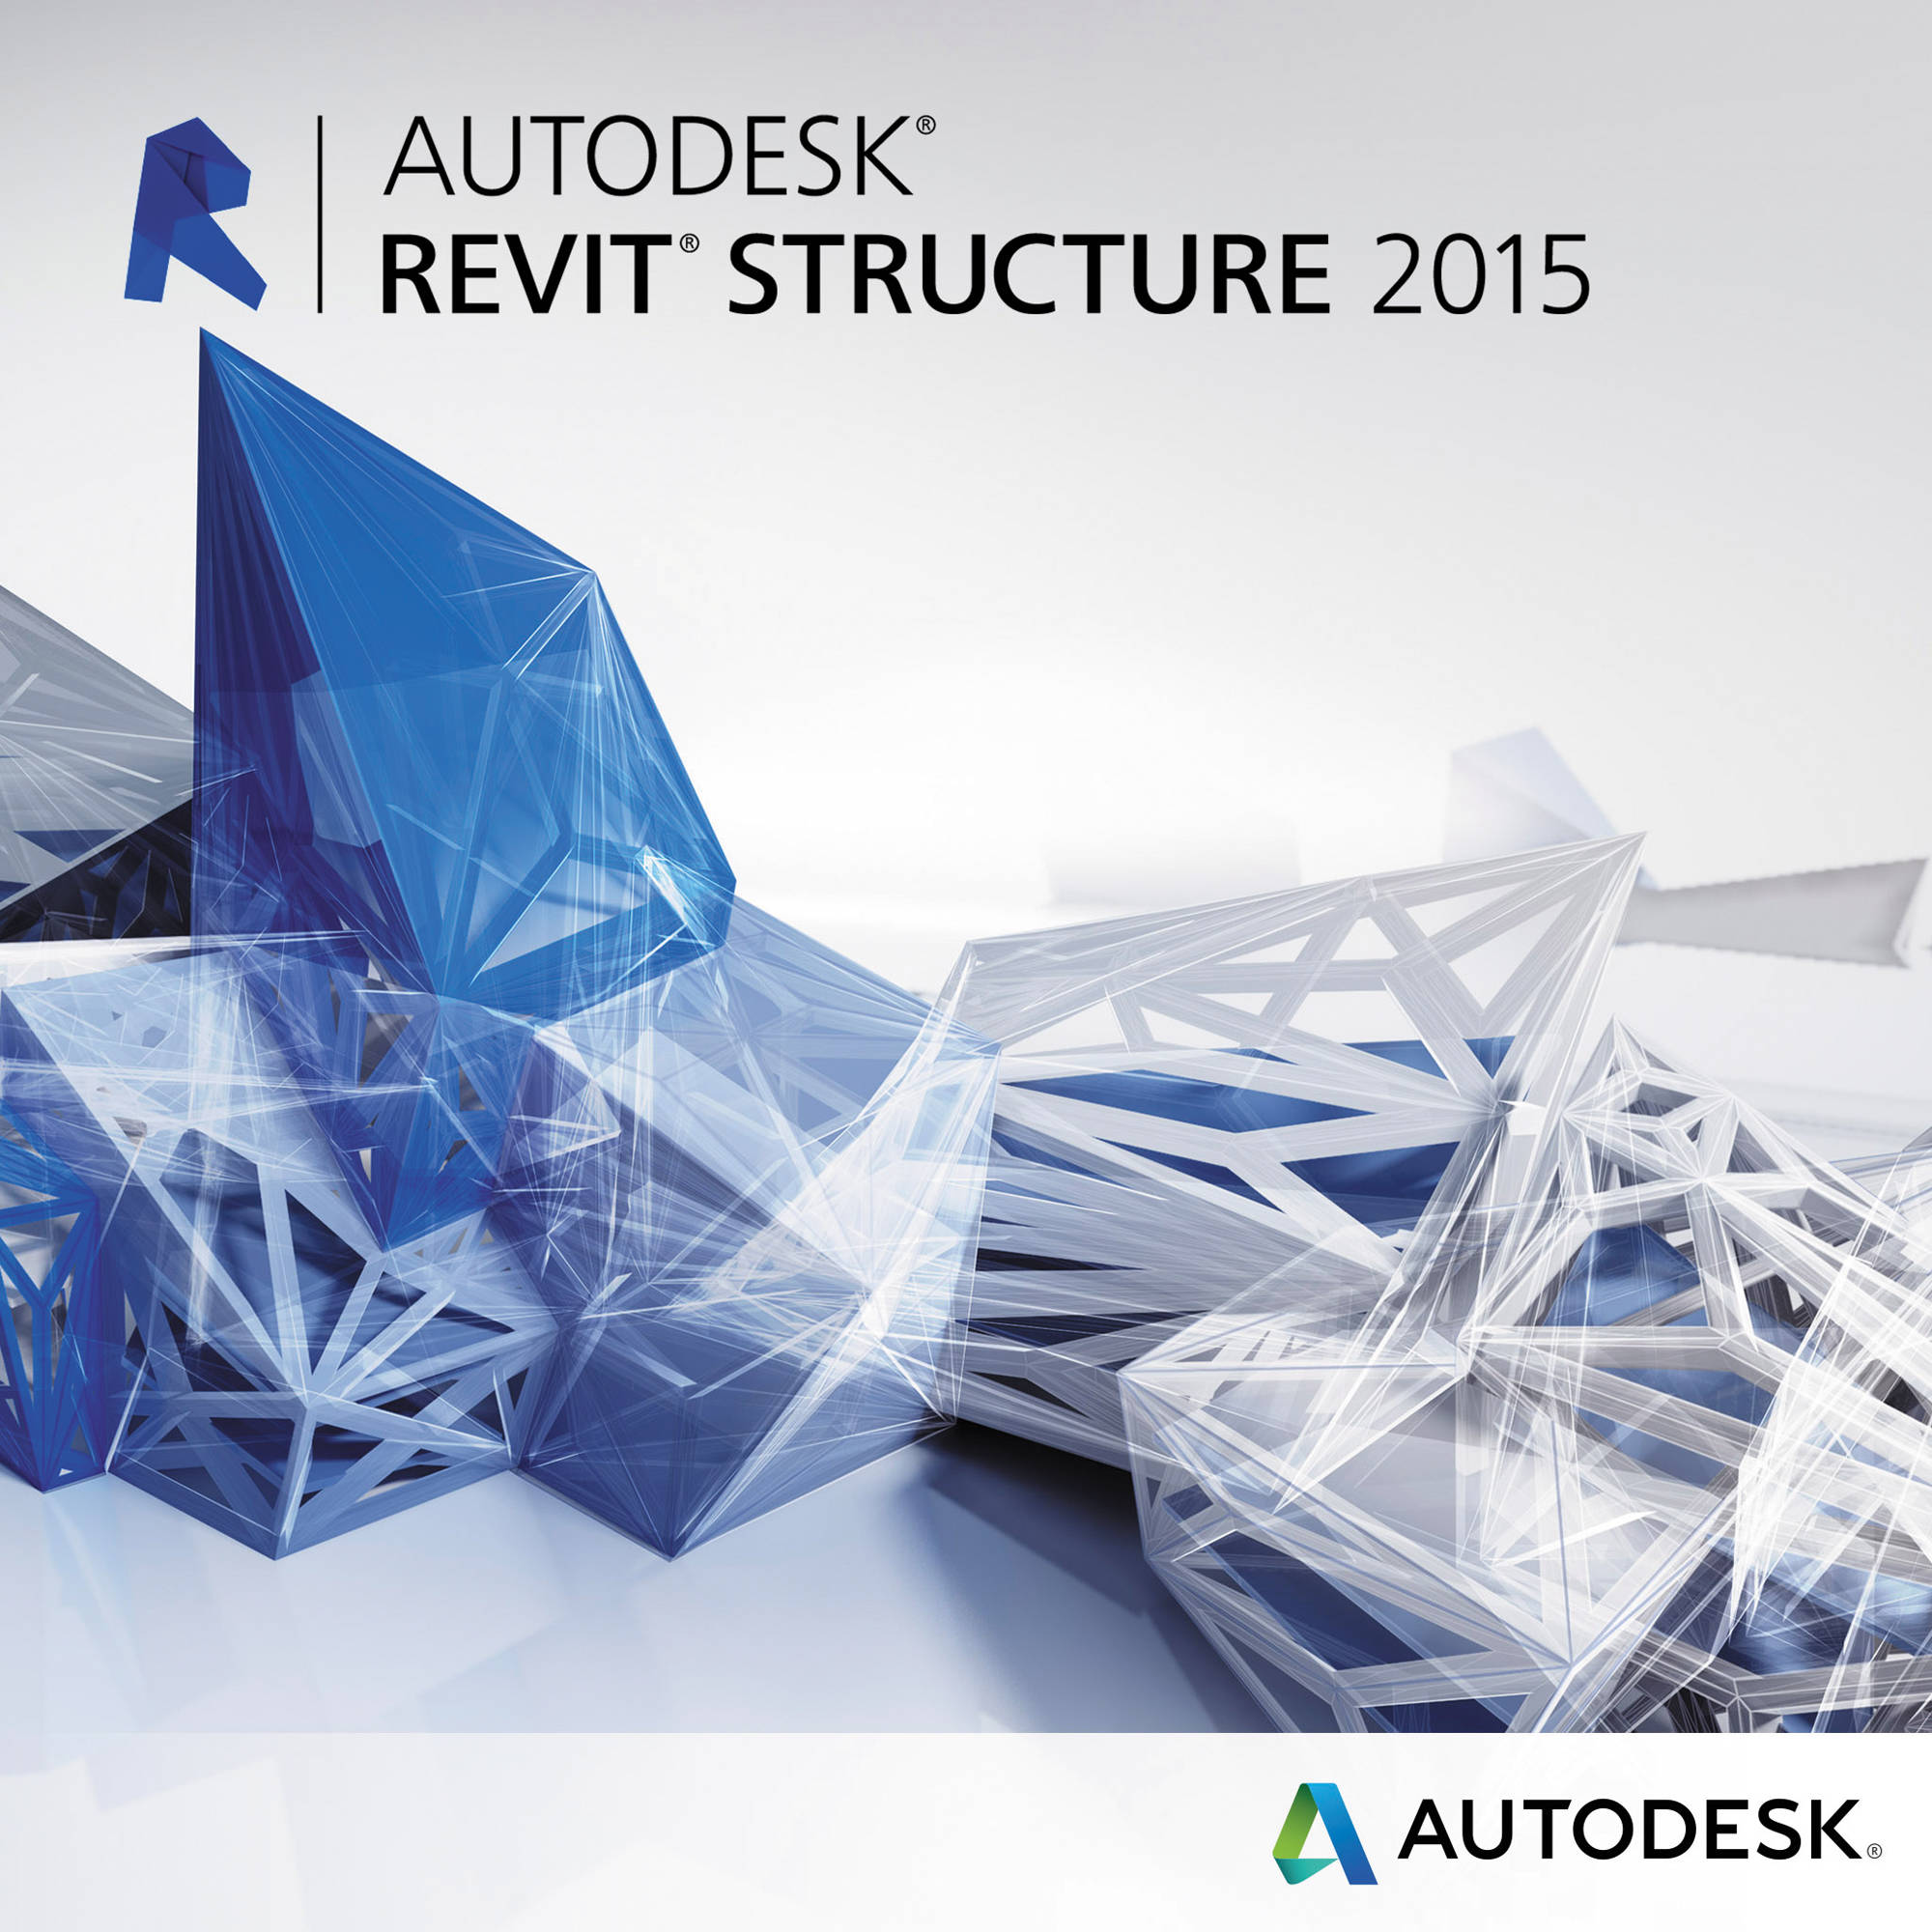 Autodesk Revit Structure 2015 (Download) 255G1-WWR111-1001 B&H